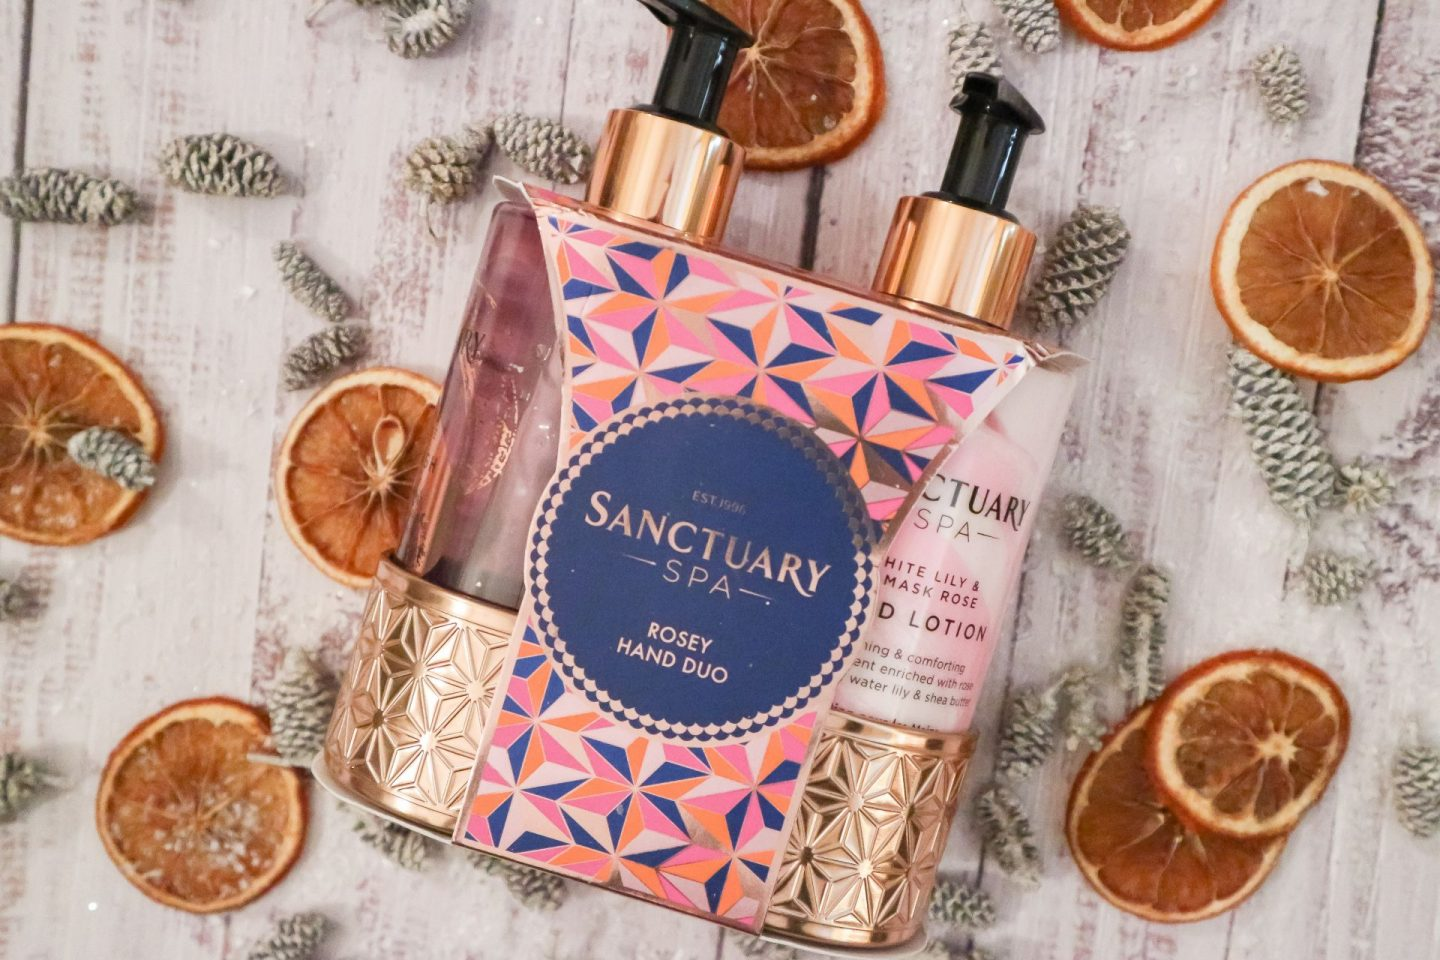 Sanctuary Spa Rosy Hands Duo